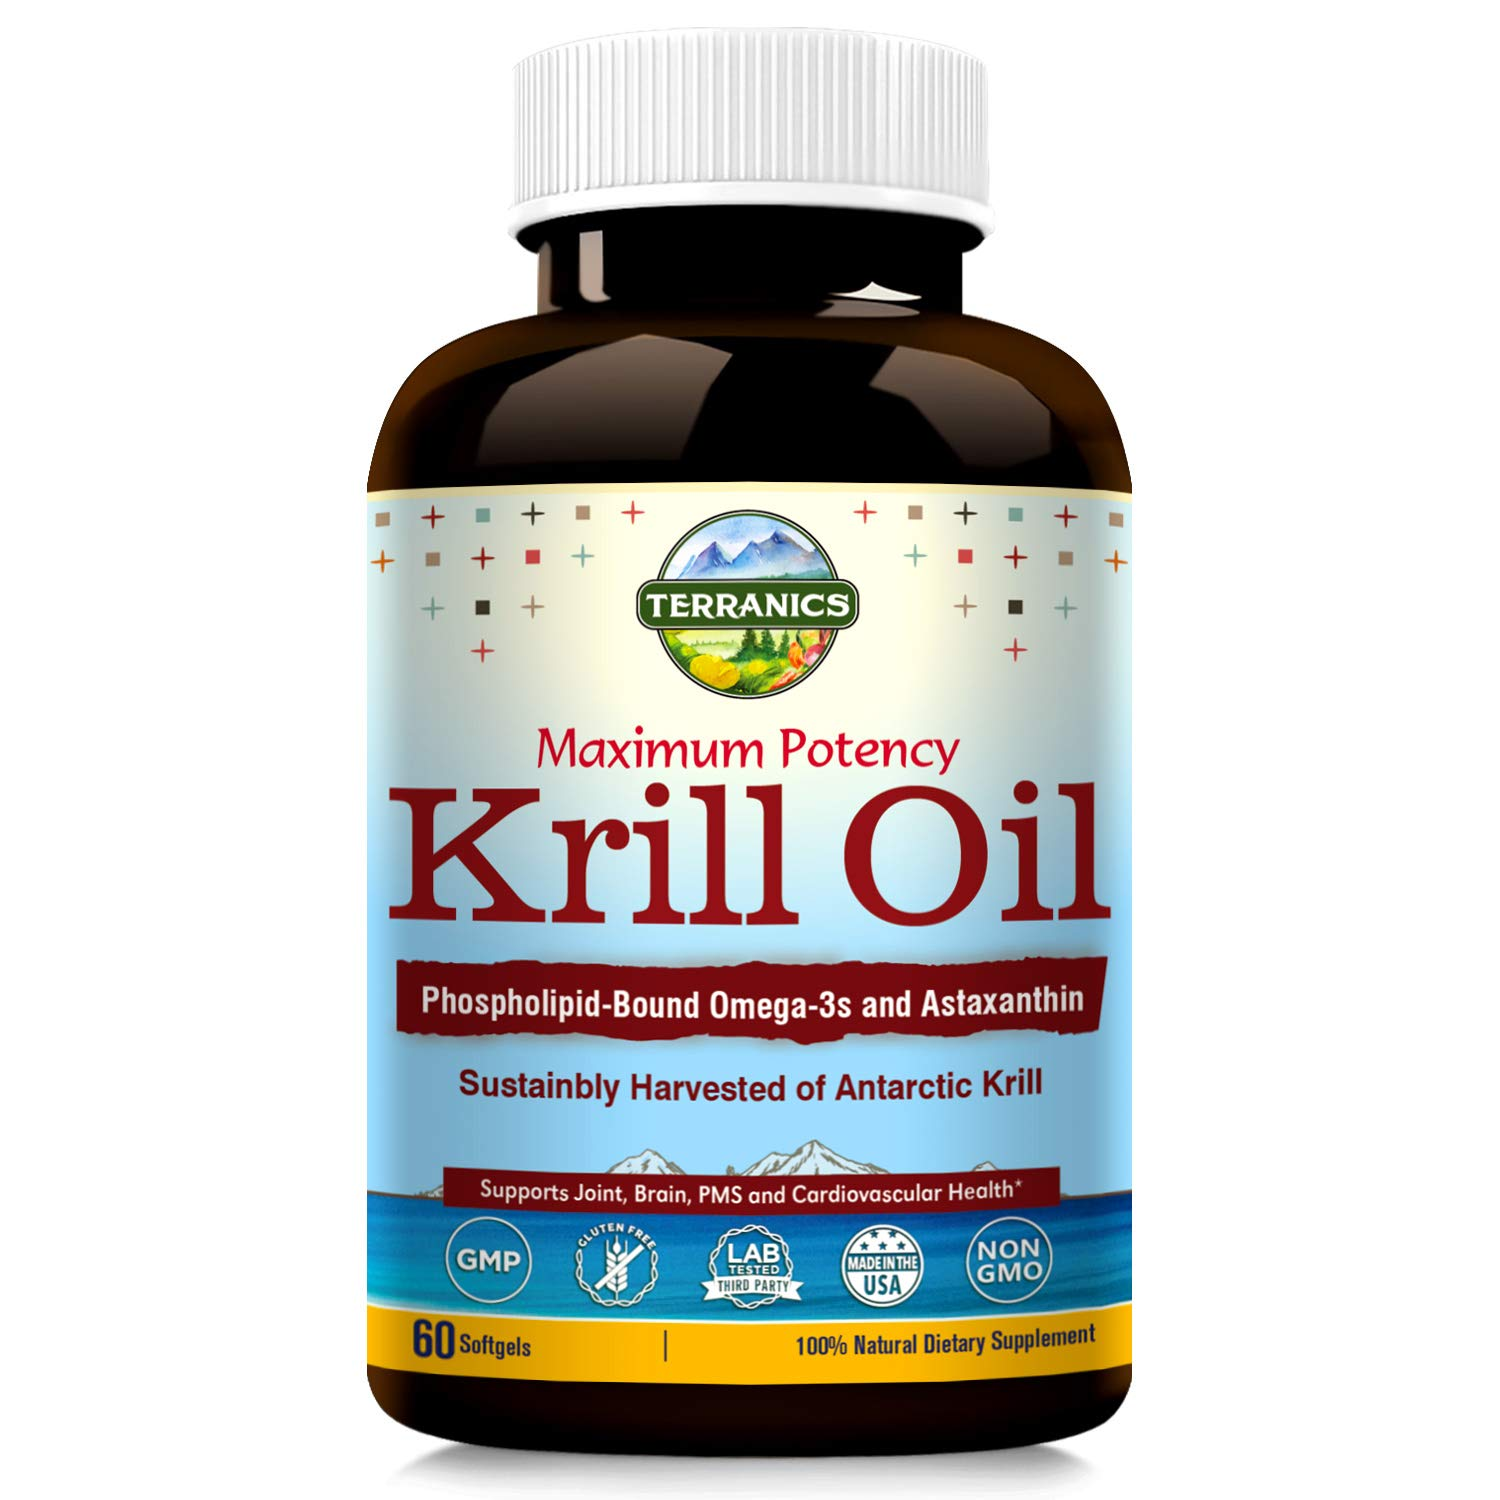 Terranics Krill Oil with Omega3s DHA & EPA, Phospholipids and Astaxanthin, 1250mg, 60 Softgels, Supports Joint, Brain and Cardiovascular Health, NON-GMO, Soy, Dairy & Gluten Free, for men and women by Terranics